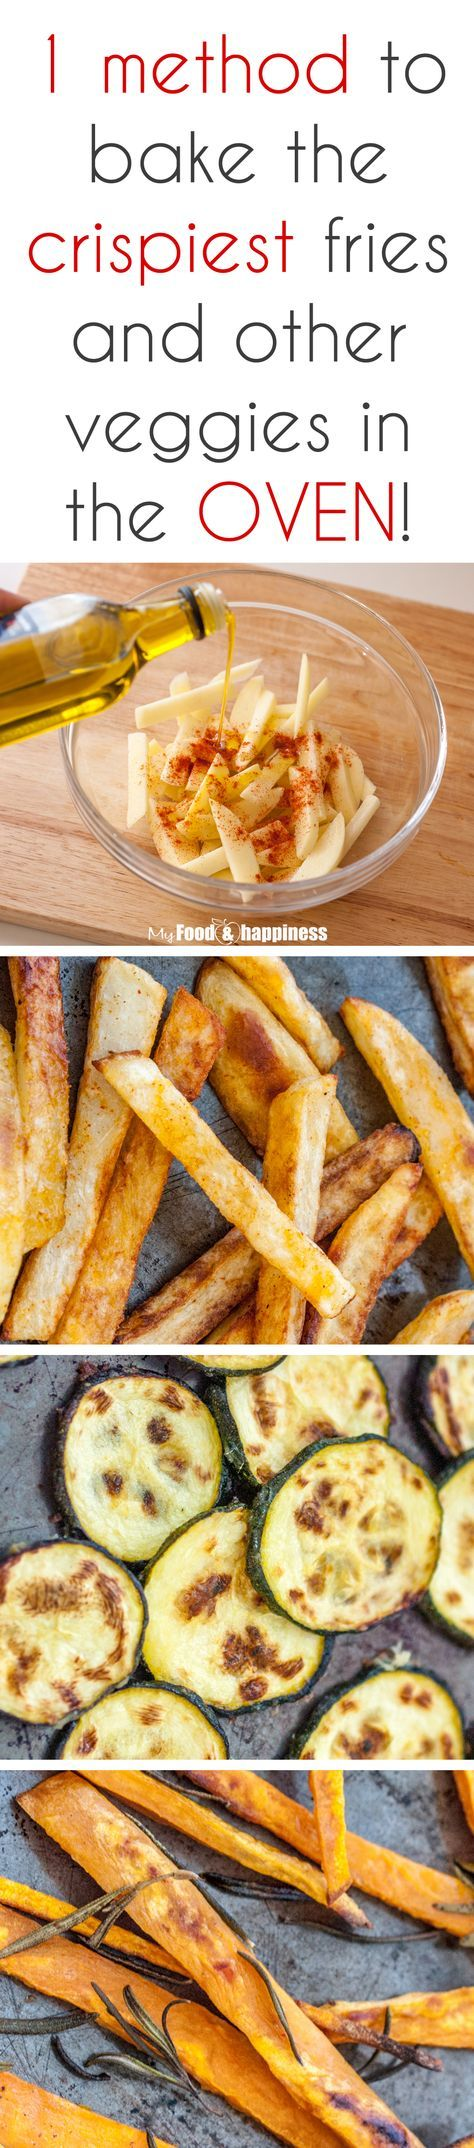 1 method to make delicious crispy sides: potato fries, sweet potato fries, zucchini and even carrot chips in the oven! Super easy and simple! This method will revolutionise your dinner time!